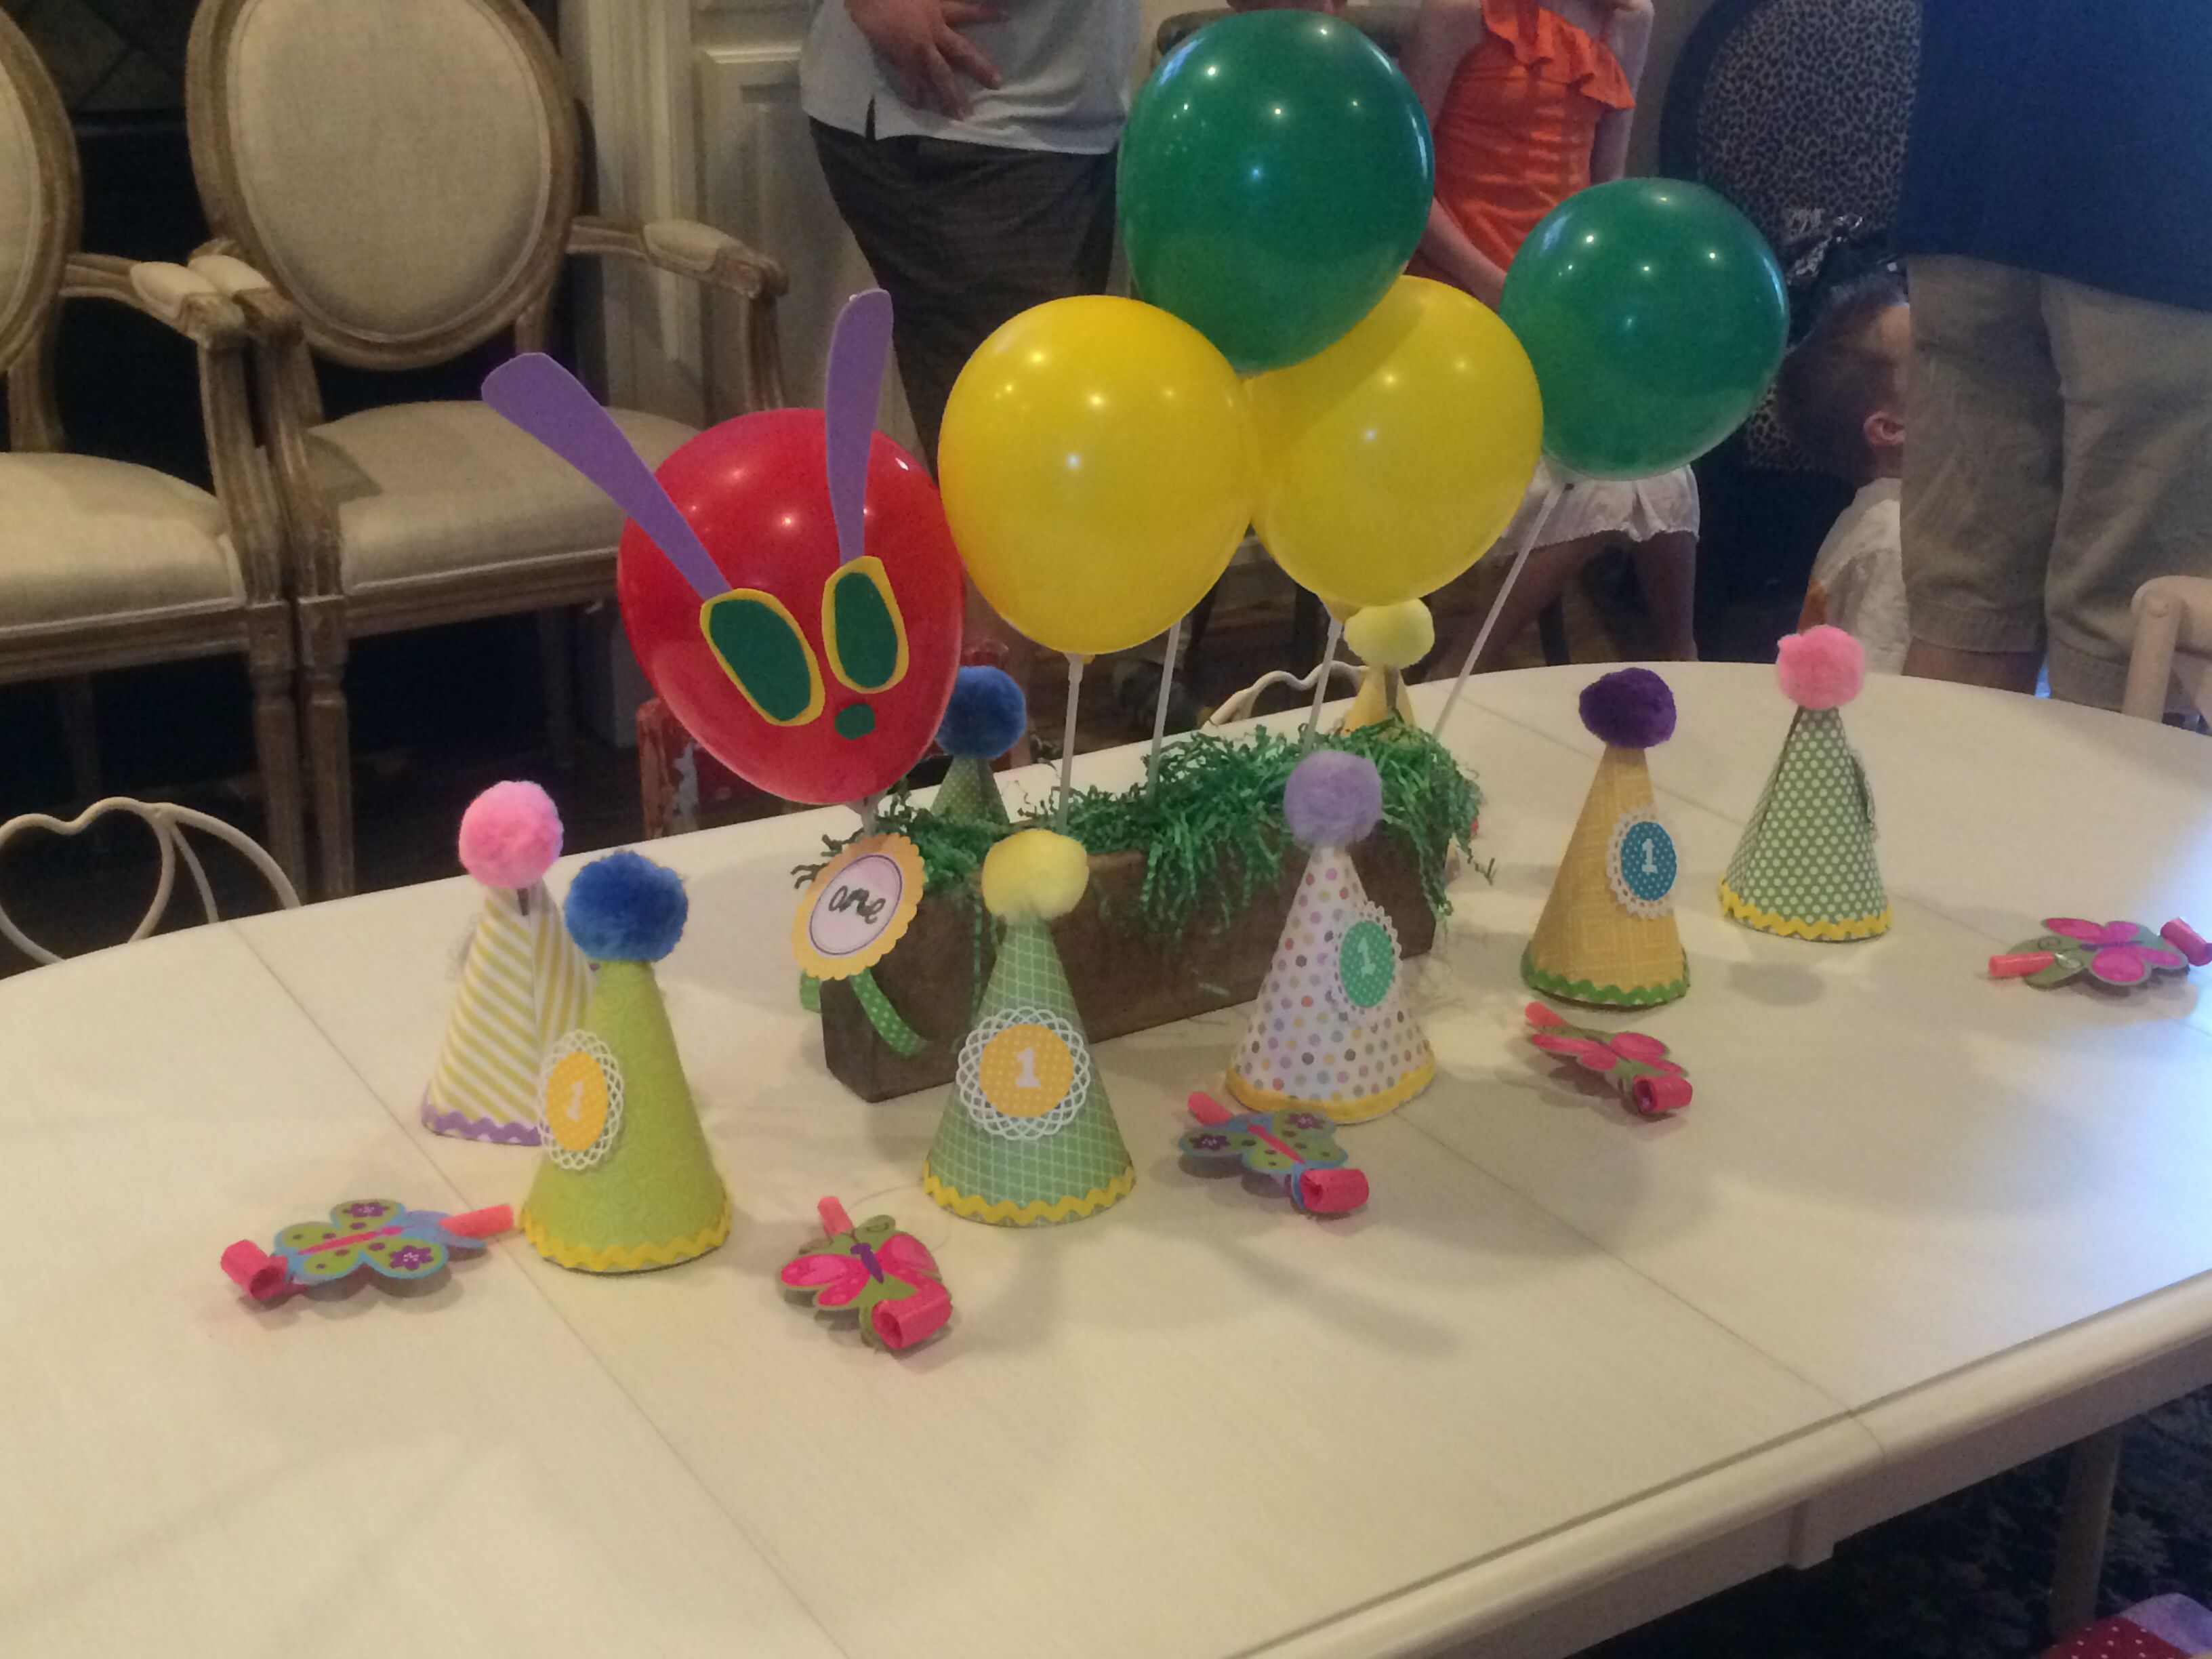 Pin By Suzanne Craig On First Birthday Ideas Very Hungry Caterpillar Hungry Caterpillar Bday Party